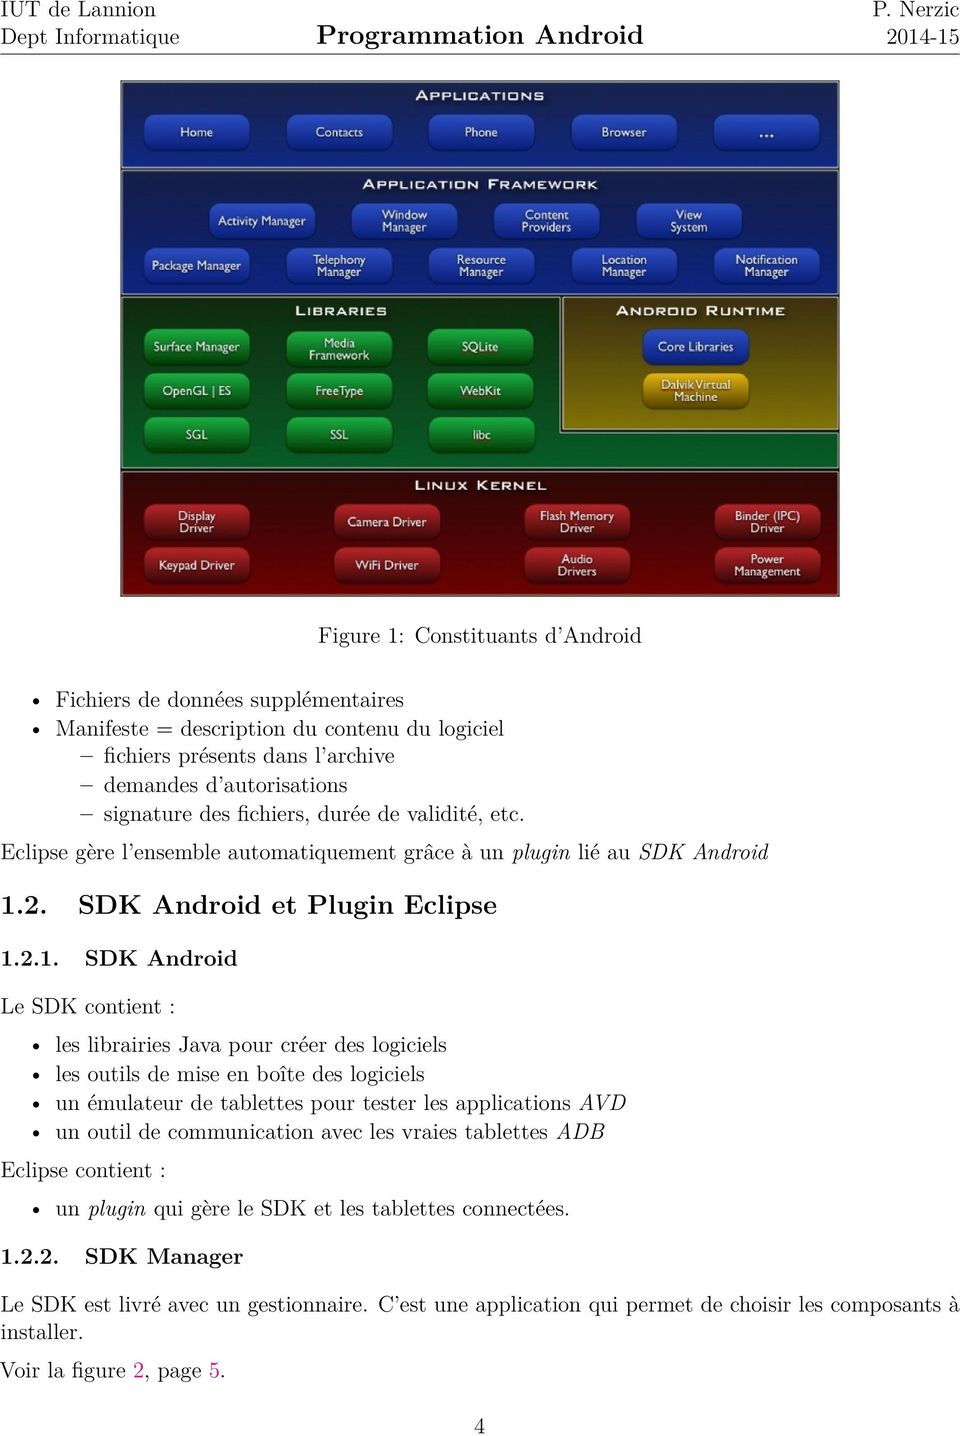 2. SDK Android et Plugin Eclipse 1.